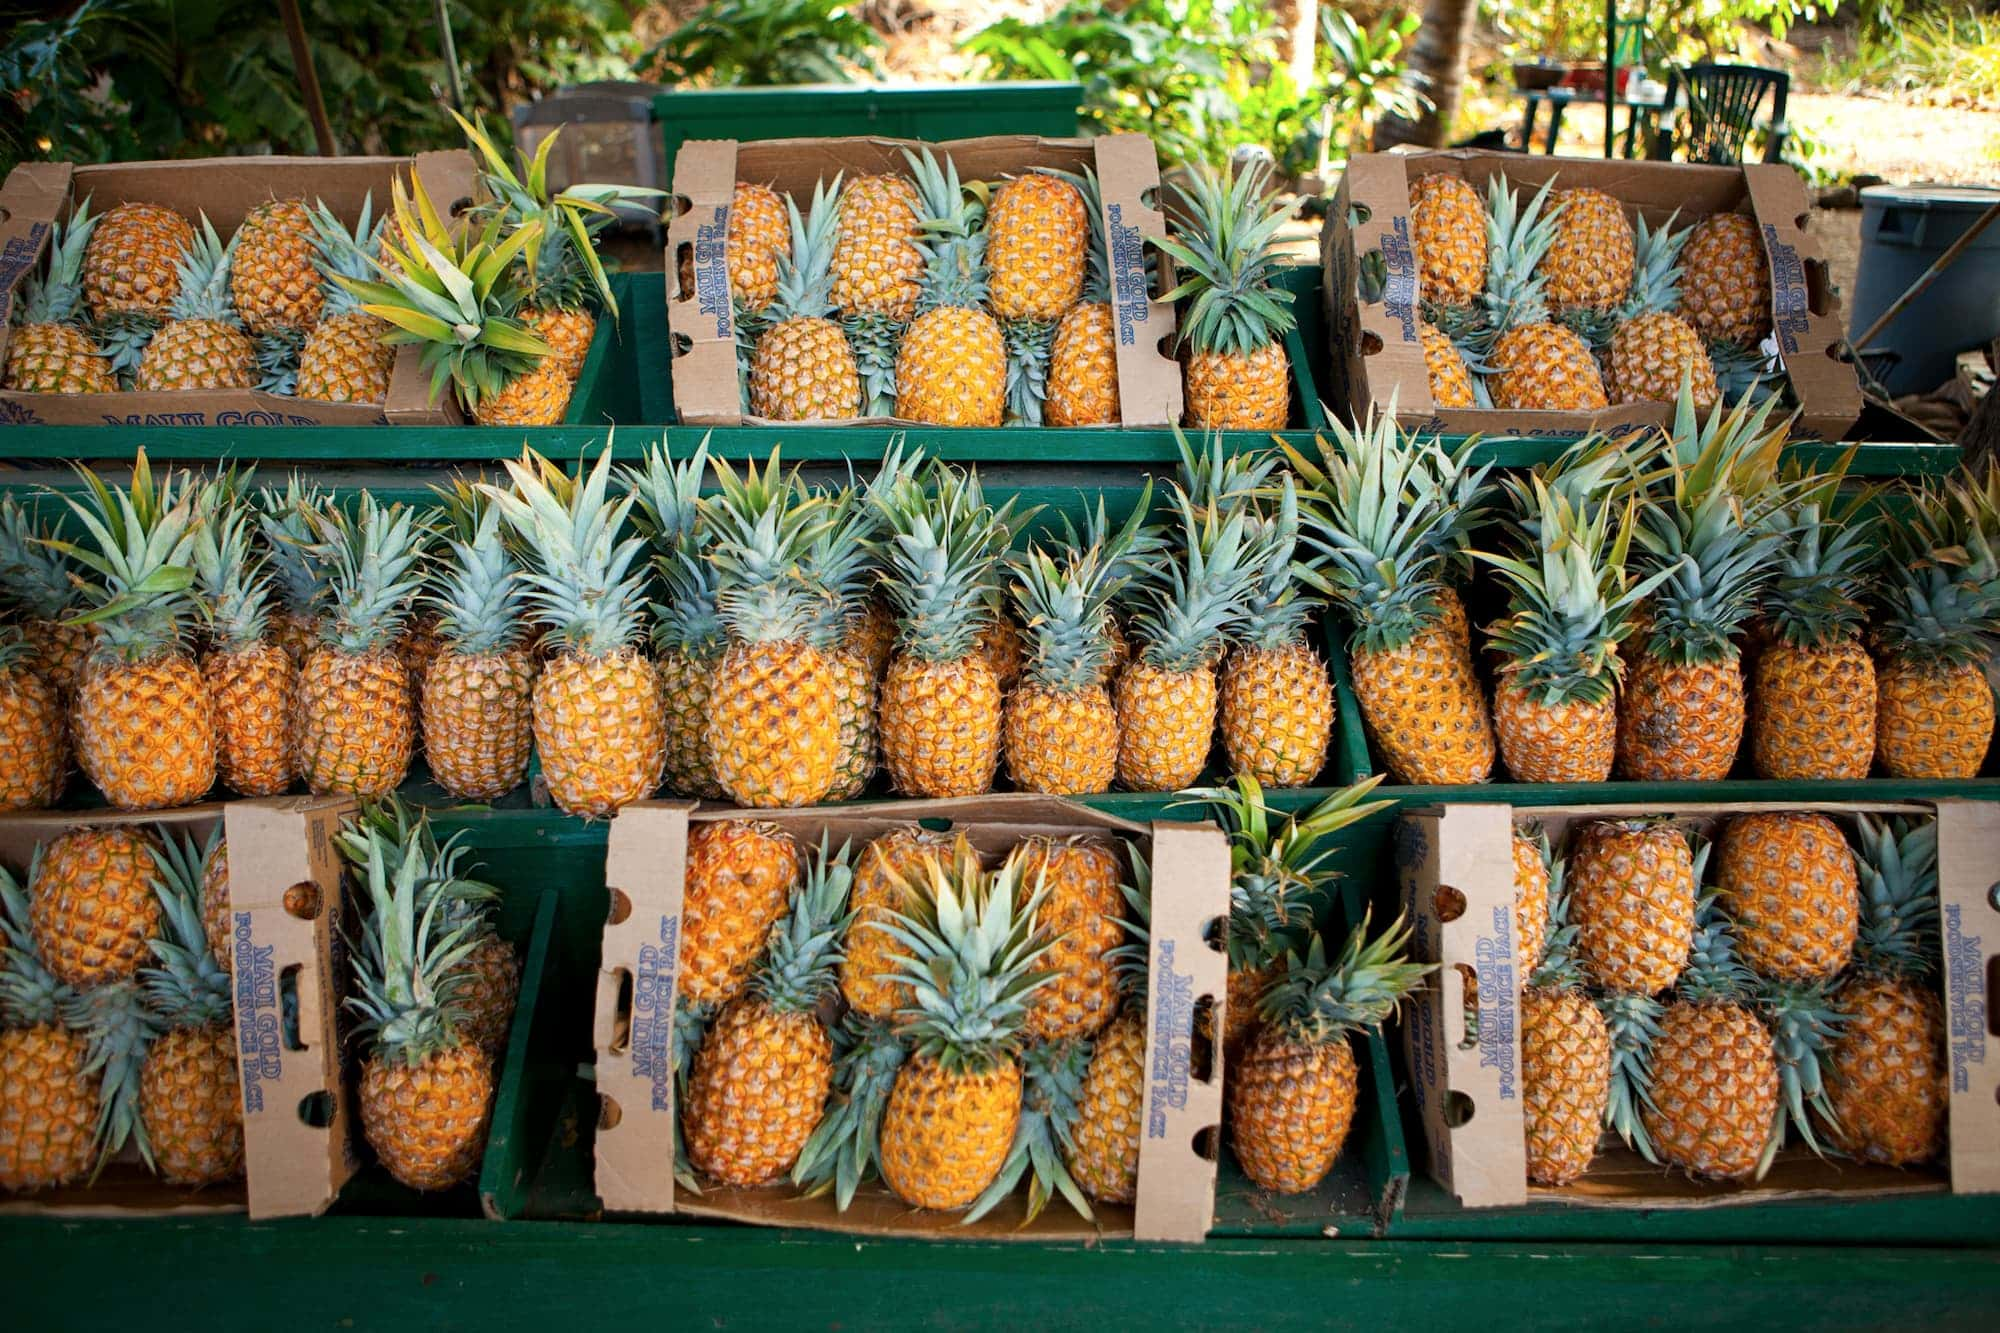 Pineapples in Hawaiʻi: 🍍history, 🍍facts, and 🍍trivia